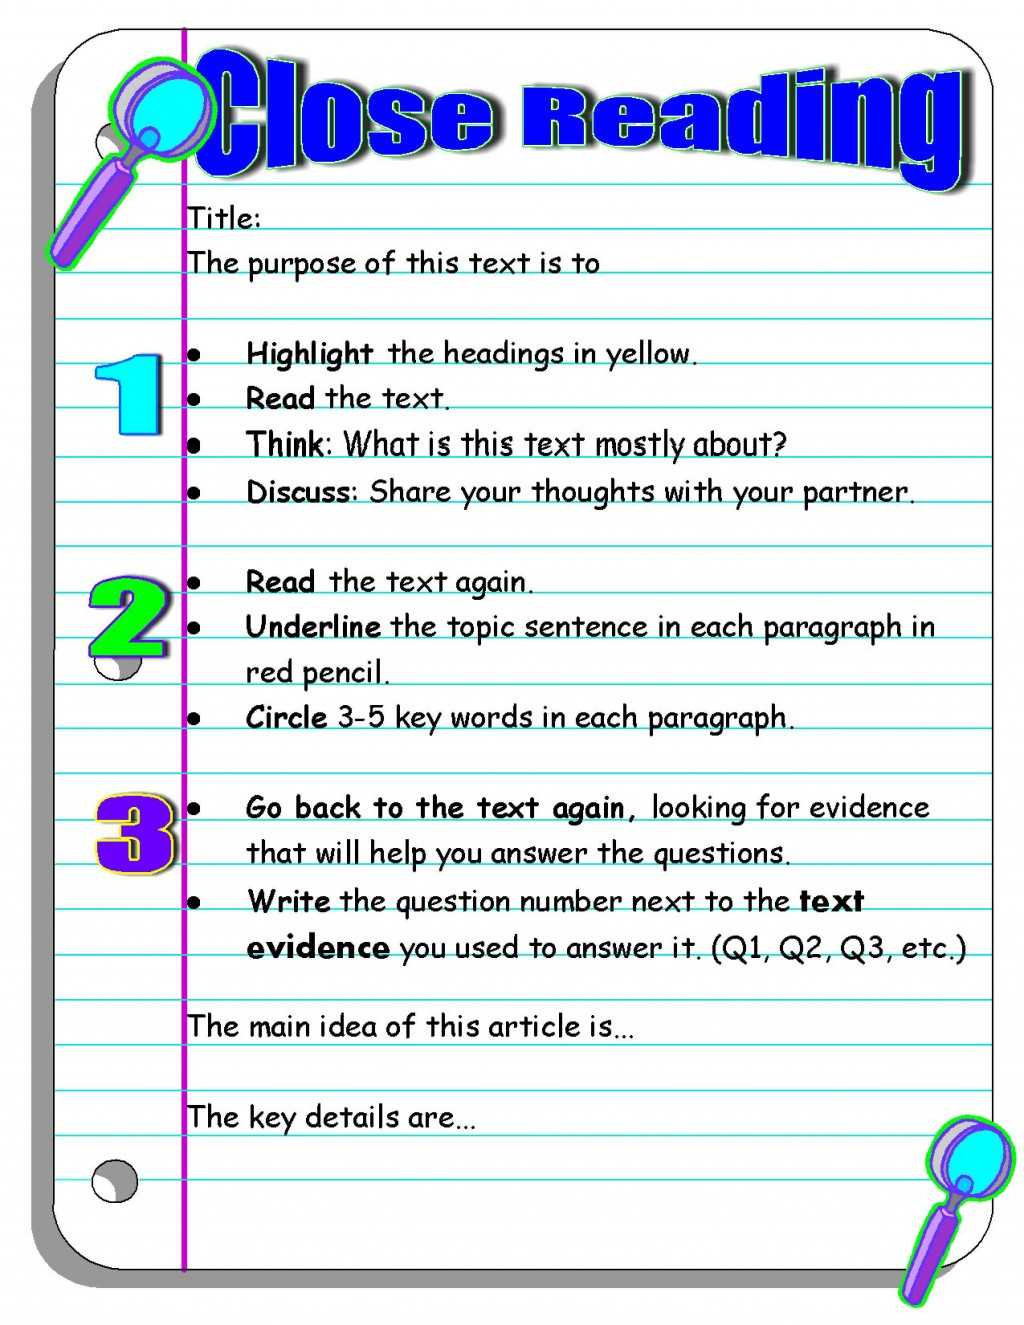 005 Essay Example What Is The Main Idea Of Reads I Pencil Close Reading Organizer Wonderful Large